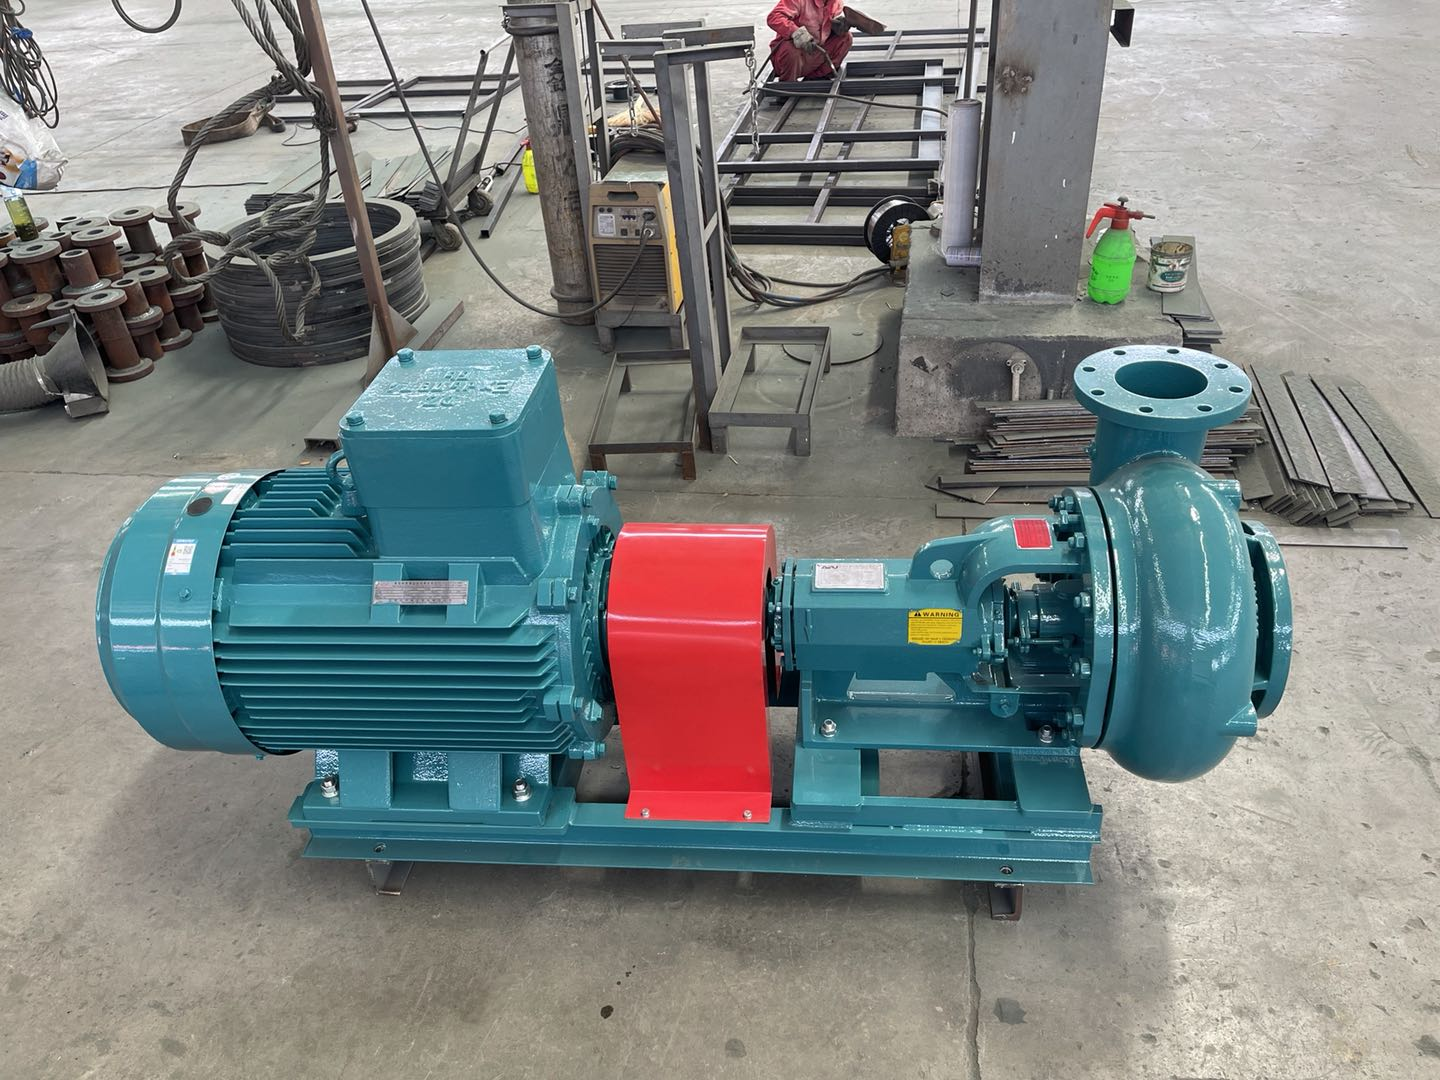 Centrifugal pump delivery after holidays